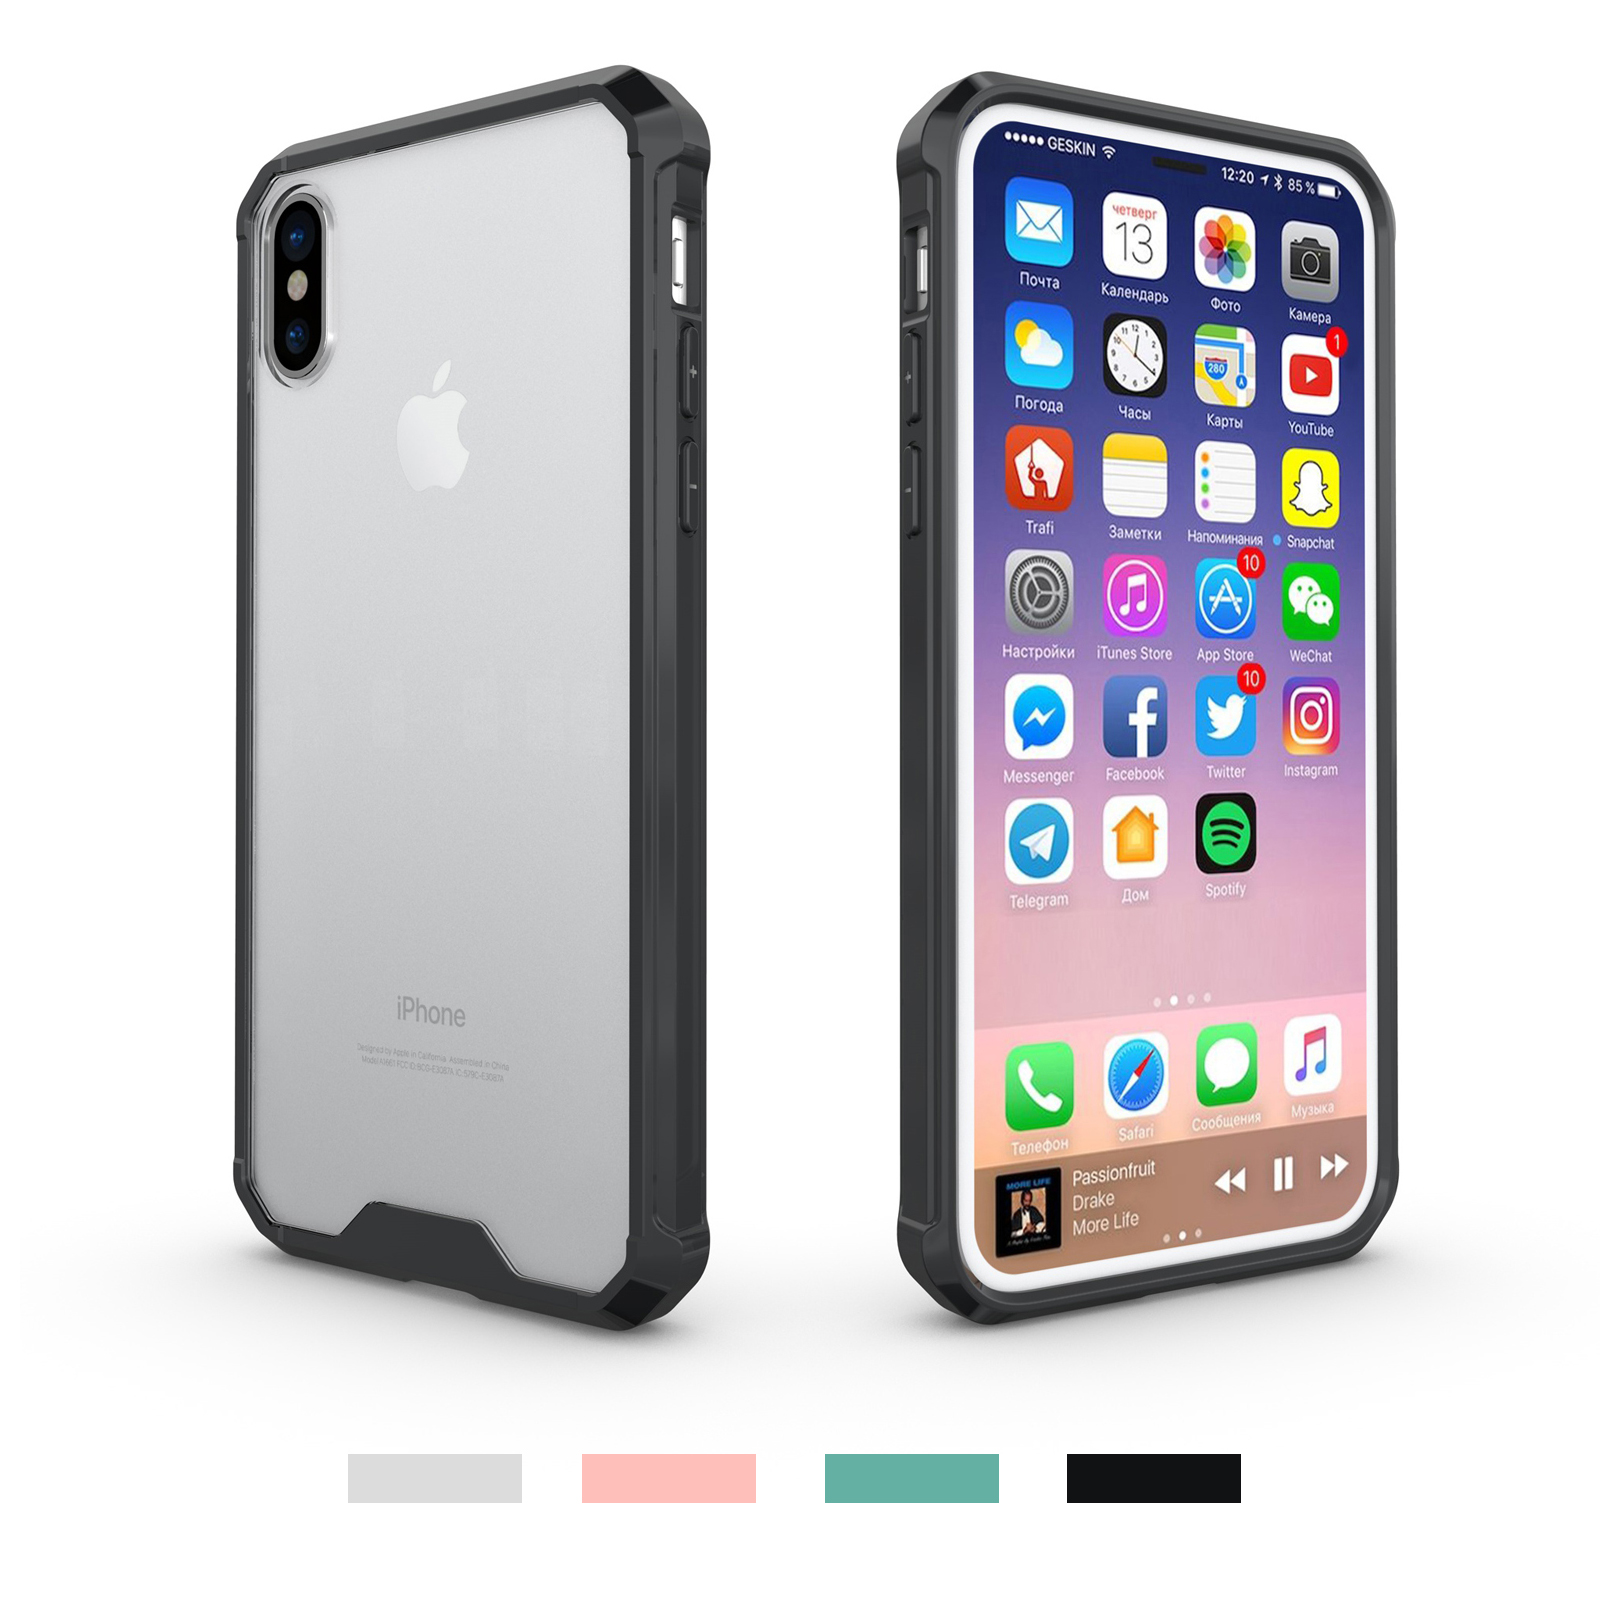 the latest 28249 698a9 Details about For iPhone Xs Max XR/8/7 Crystal Clear Hybrid Ultra-thin  Bumper Hard Case Cover